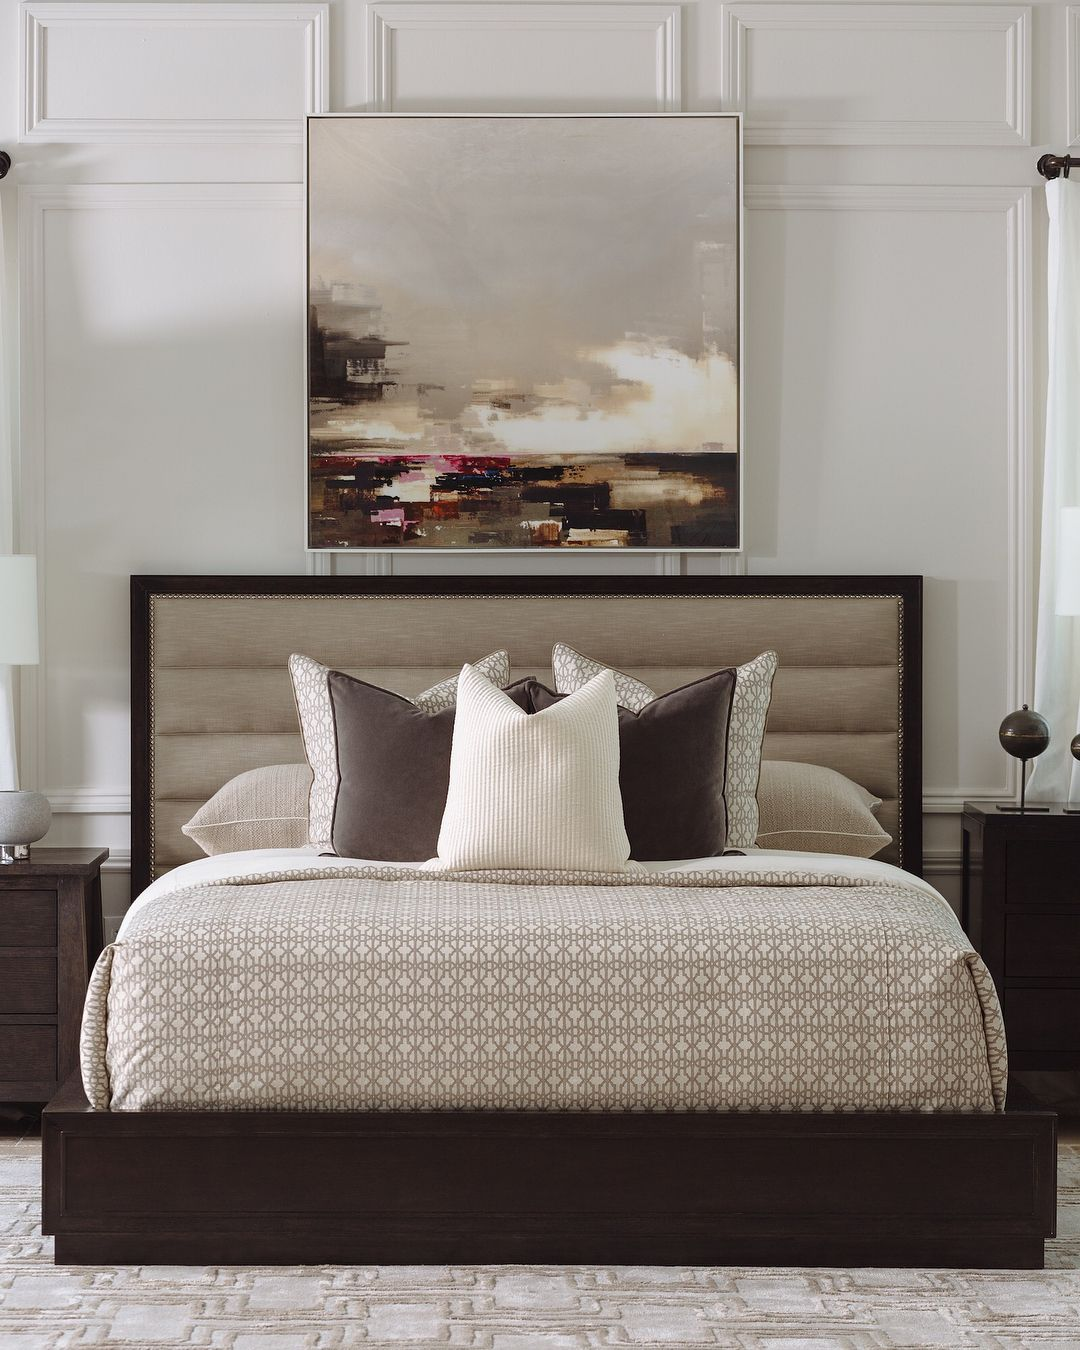 Take Your Bedroom To The Next Level With Custom Designs From A R T Talk To Our Style Advisors Via Link On Bio In Bed Design Interior Design Bedroom Art sample bedroom furniture